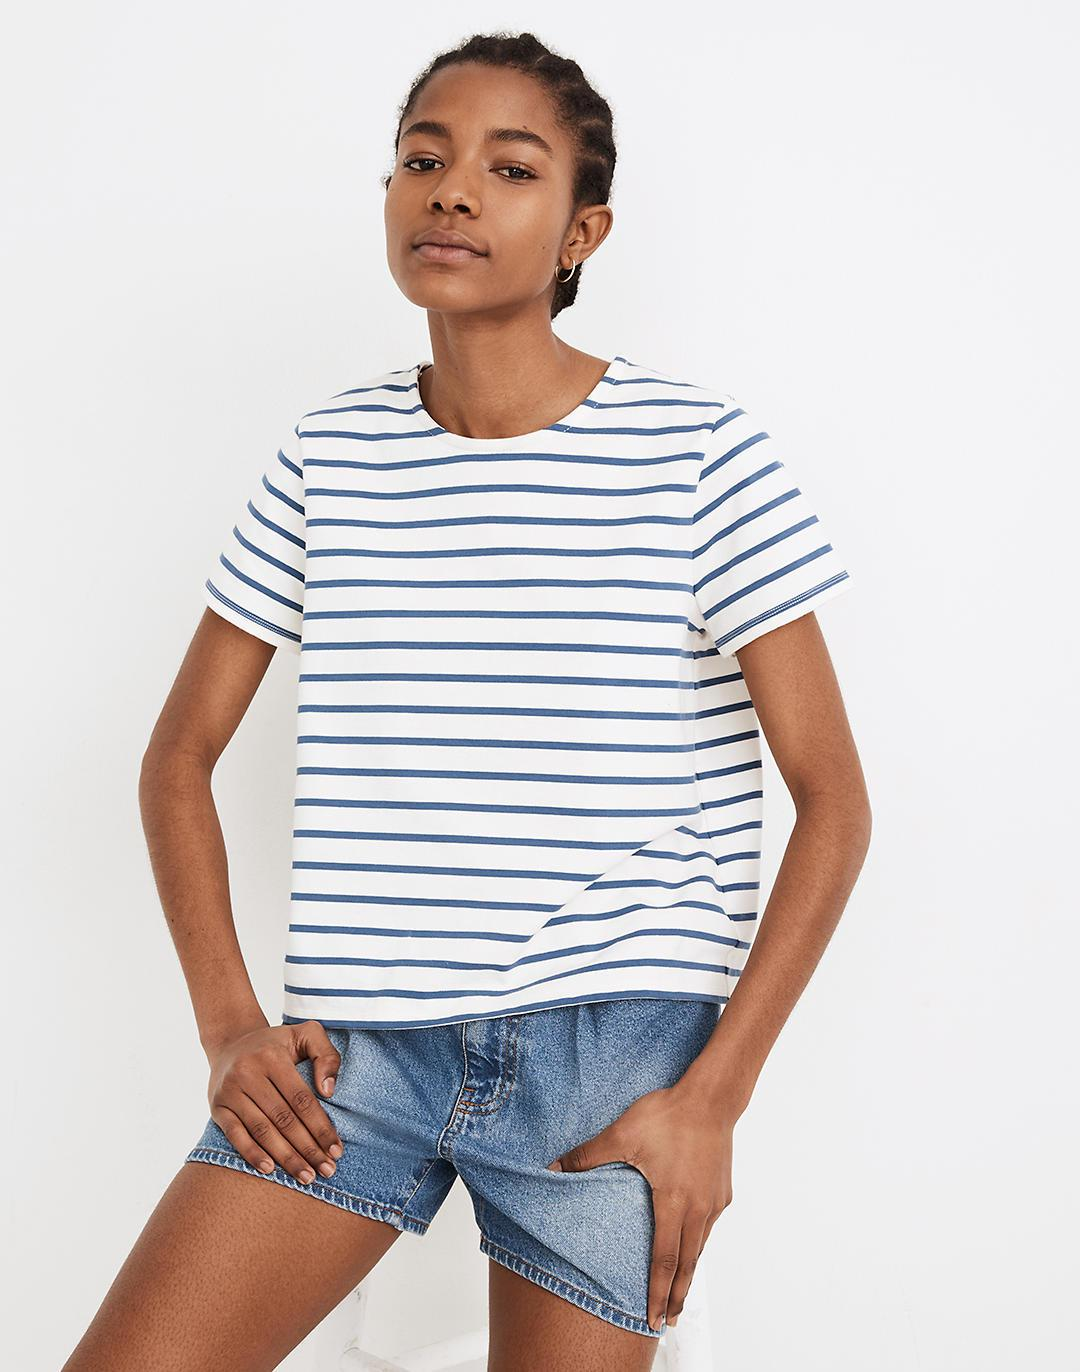 Luxe Boxy-Crop Tee in Atmore Stripe